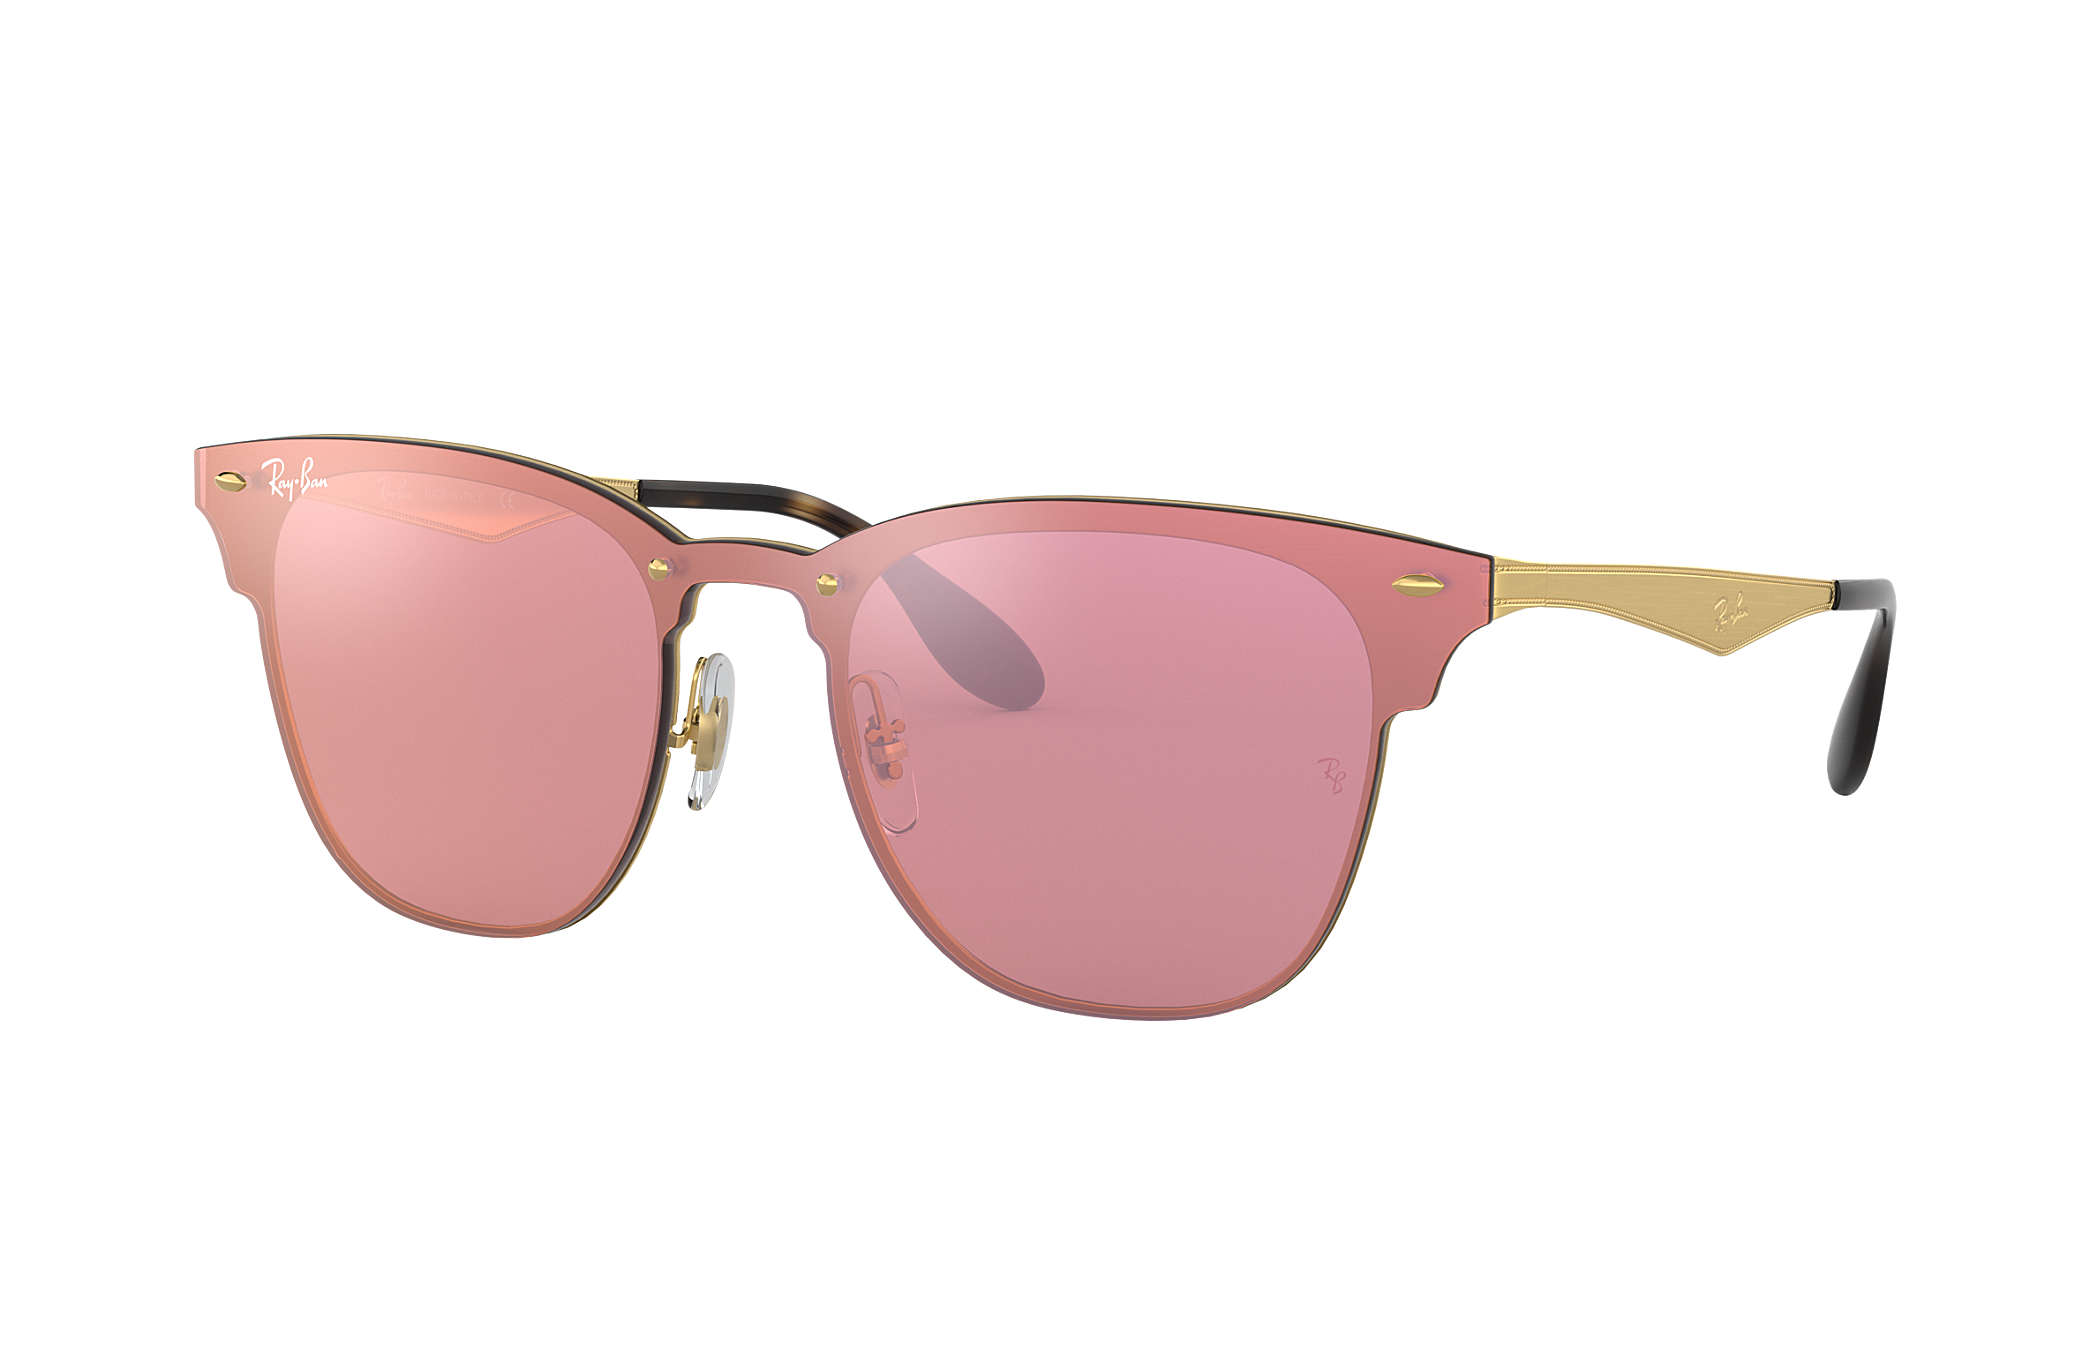 0b179c5d1fdce Ray-Ban Blaze Clubmaster RB3576N Ouro - Metal - Lentes Rosa ...